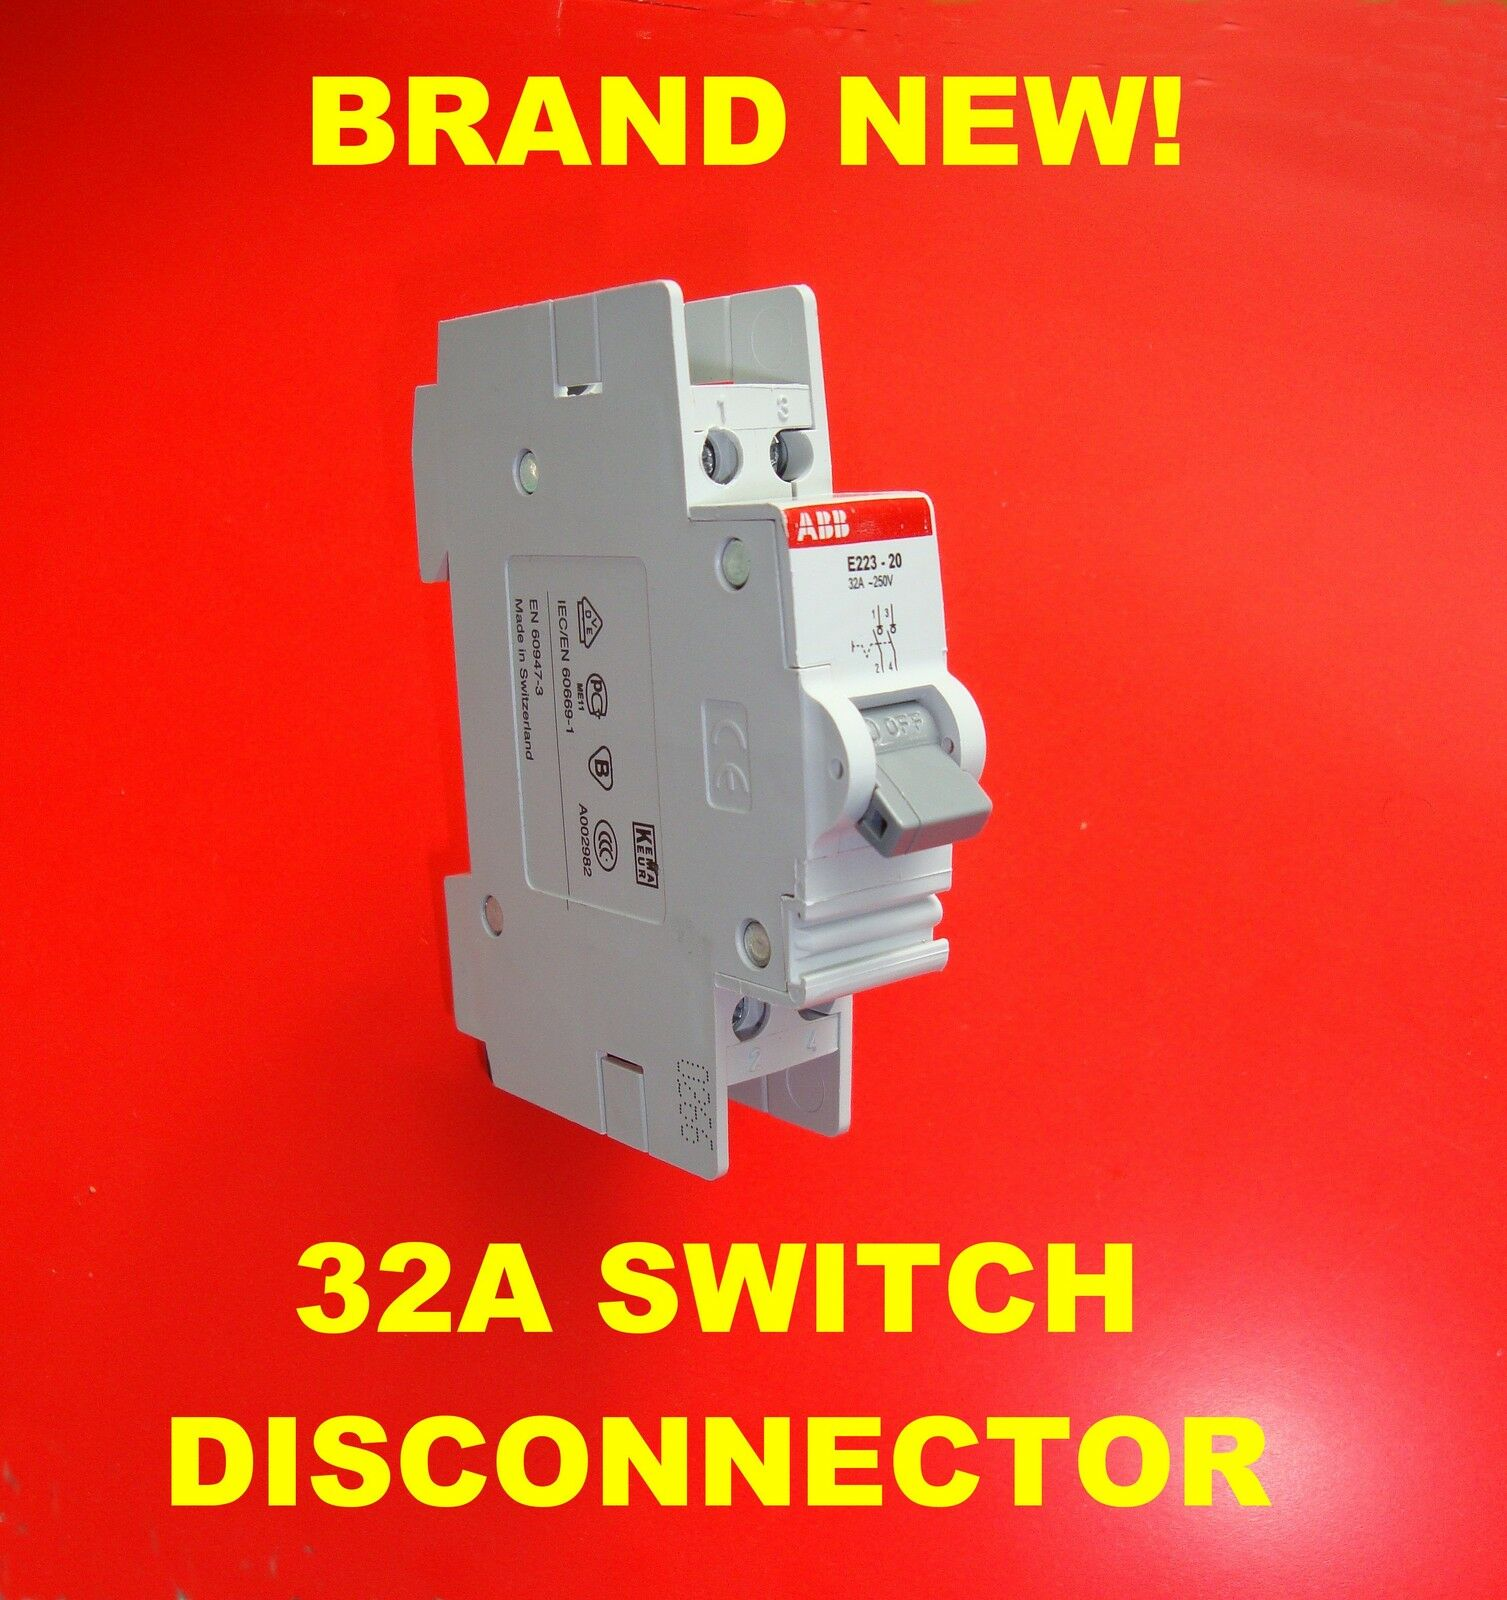 32a 250v Main Switch Disconnector Isolator Double Pole Din Rail Between Disconnectors Load Switches And Circuit 1 Sur Voir Plus